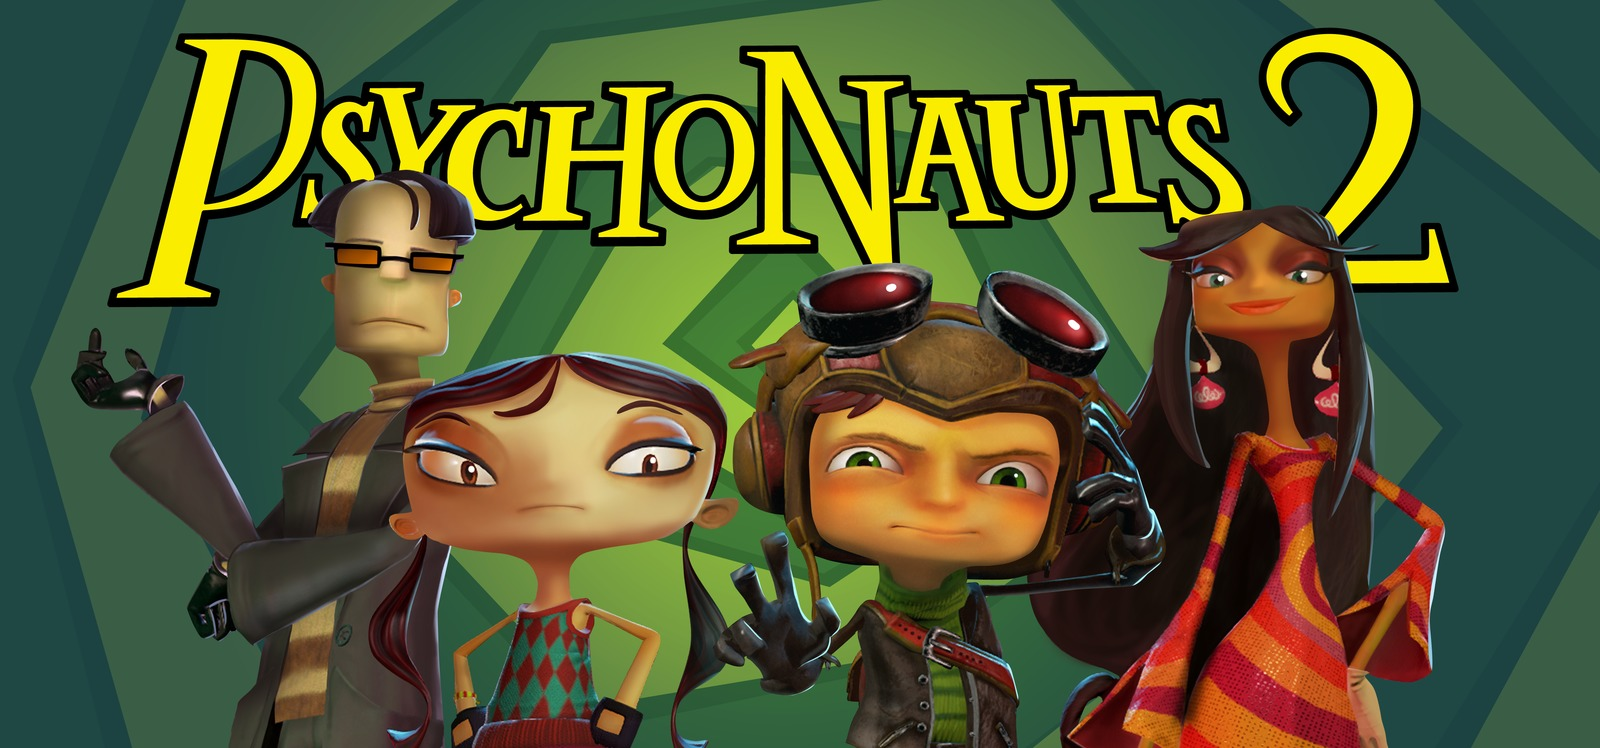 Photo of Primele secvențe de gameplay din Psychonauts 2